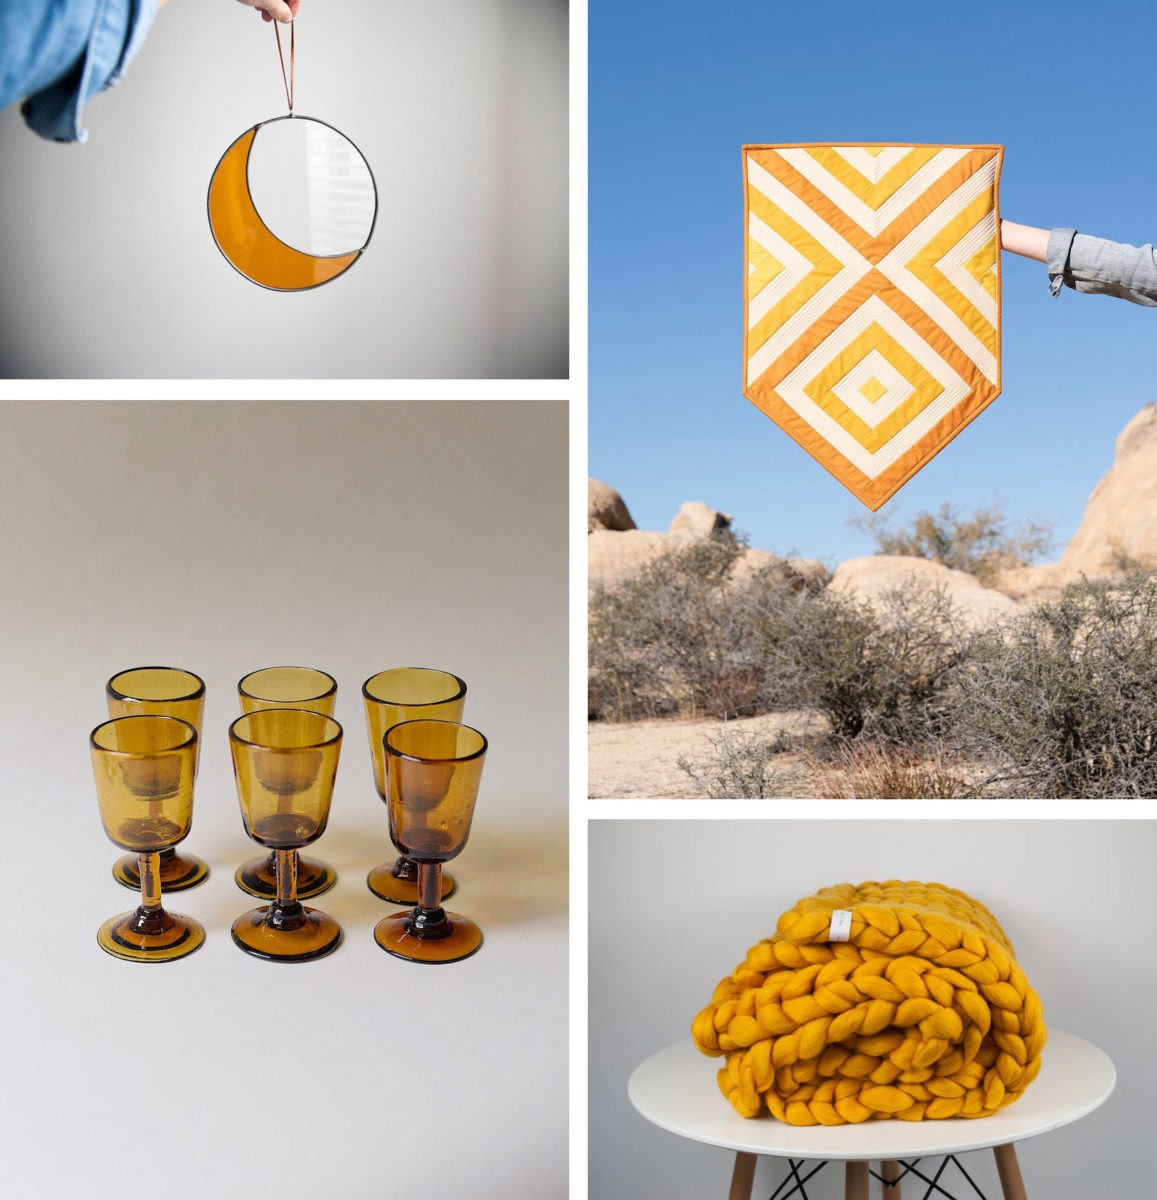 Glass and textile home decor accents from Etsy